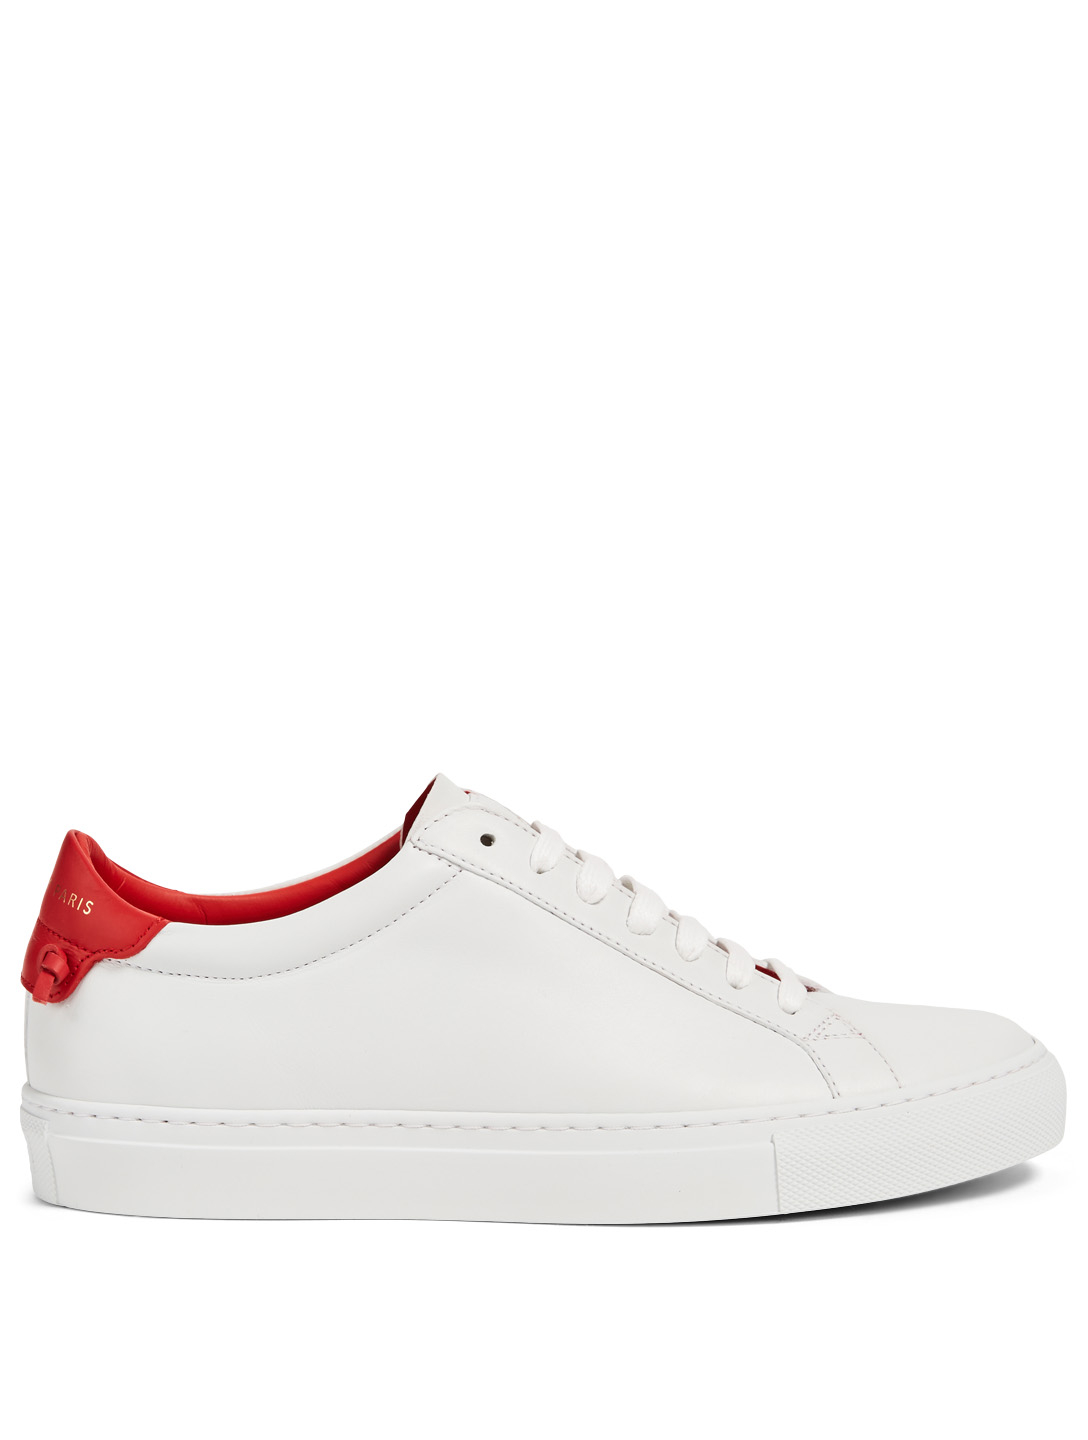 GIVENCHY Urban Street Leather Sneakers Women's Red